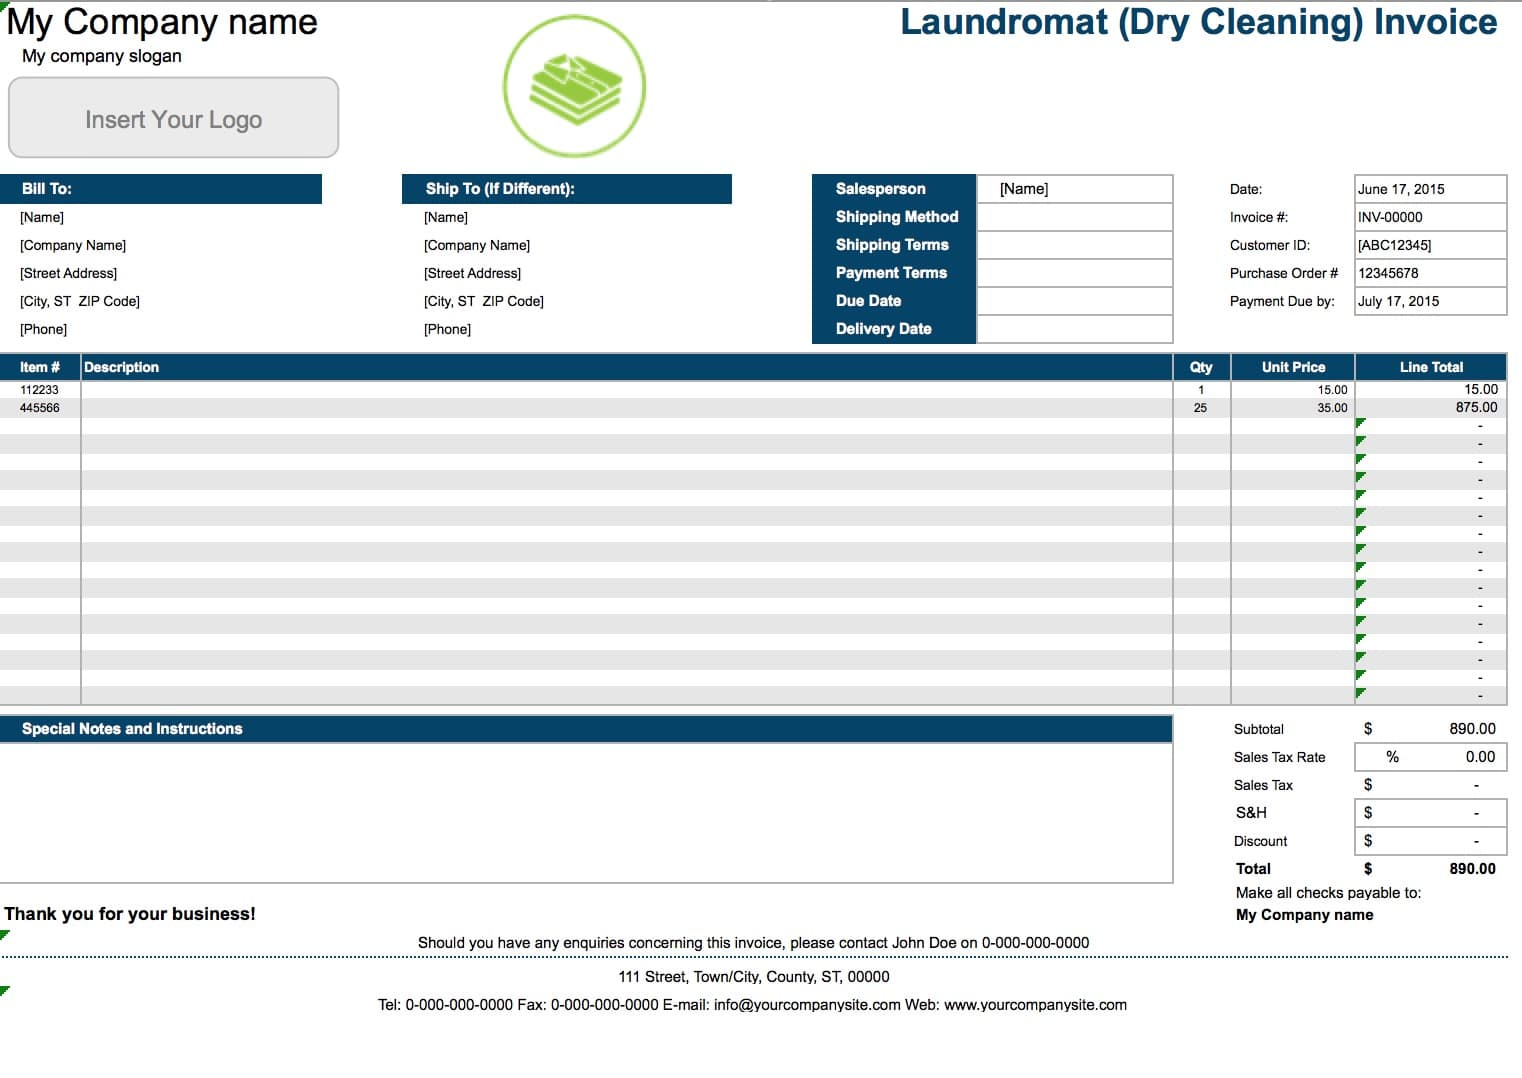 Free Laundromat Dry Cleaning Invoice Template Excel PDF Word - How to make invoice on excel best online clothing stores